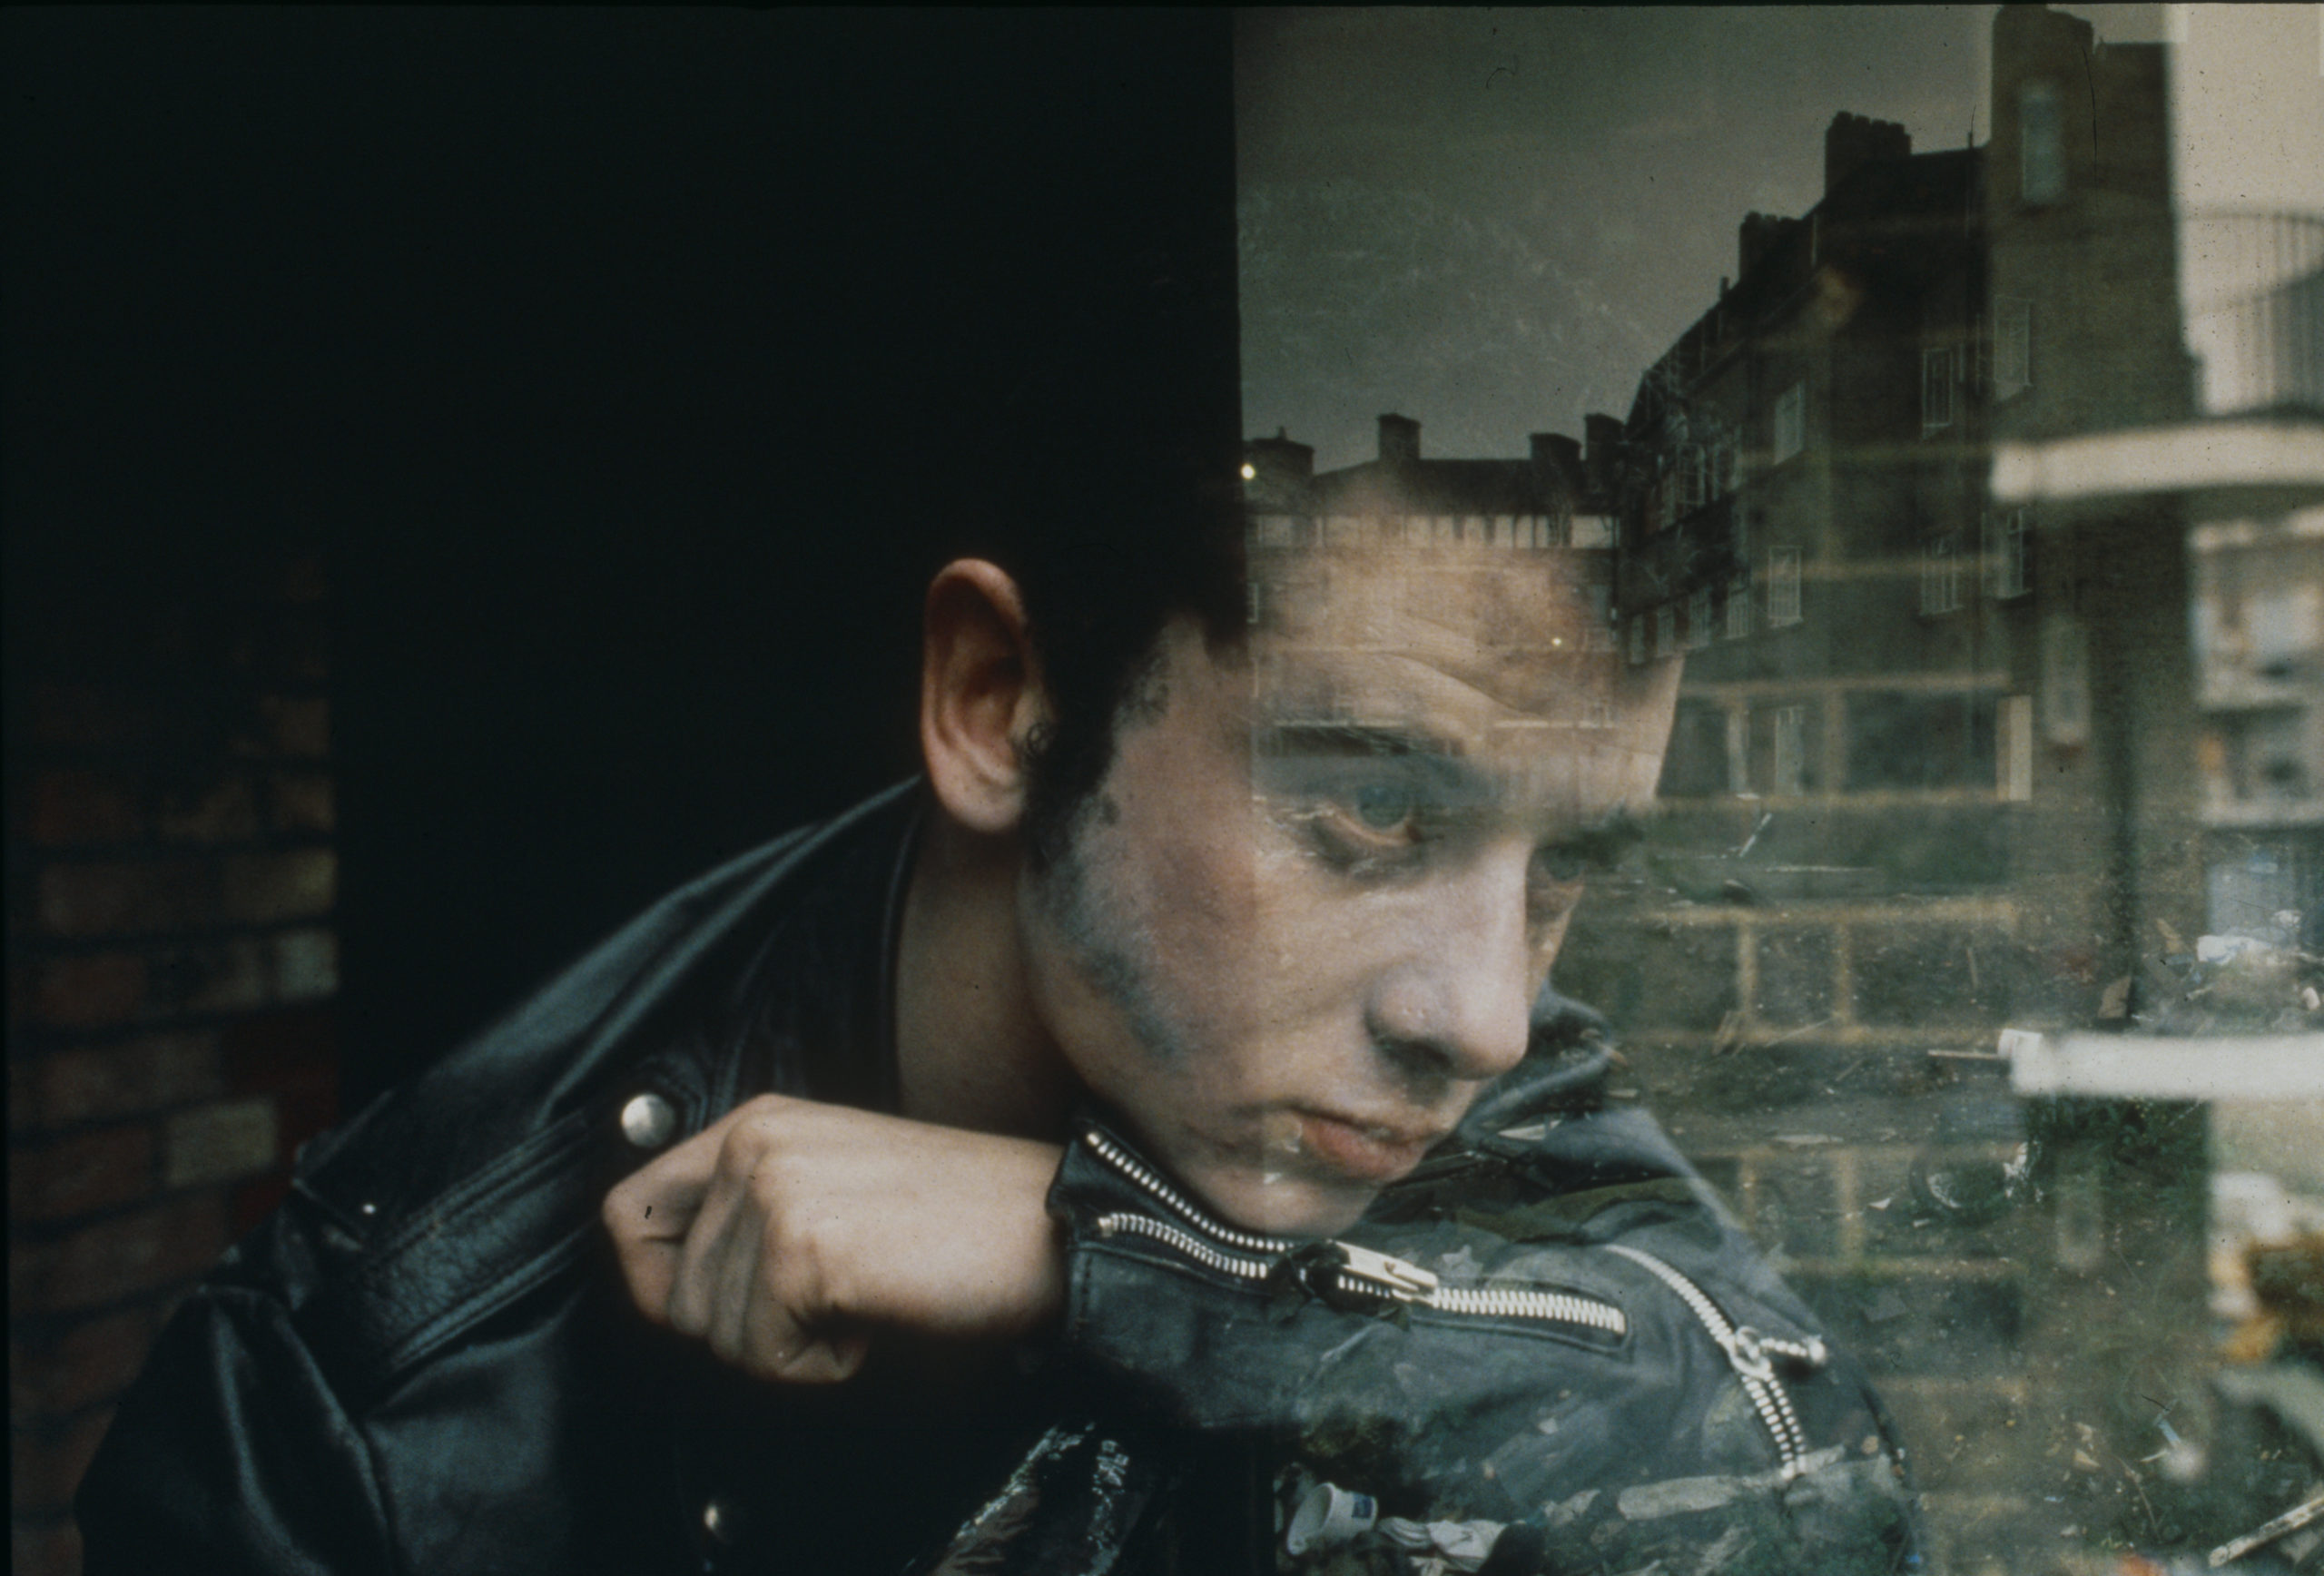 Film still from The Last of England film by artist Derek Jarman, image depicts man looking out a window with the reflection of a red brick building displayed to the right of the image